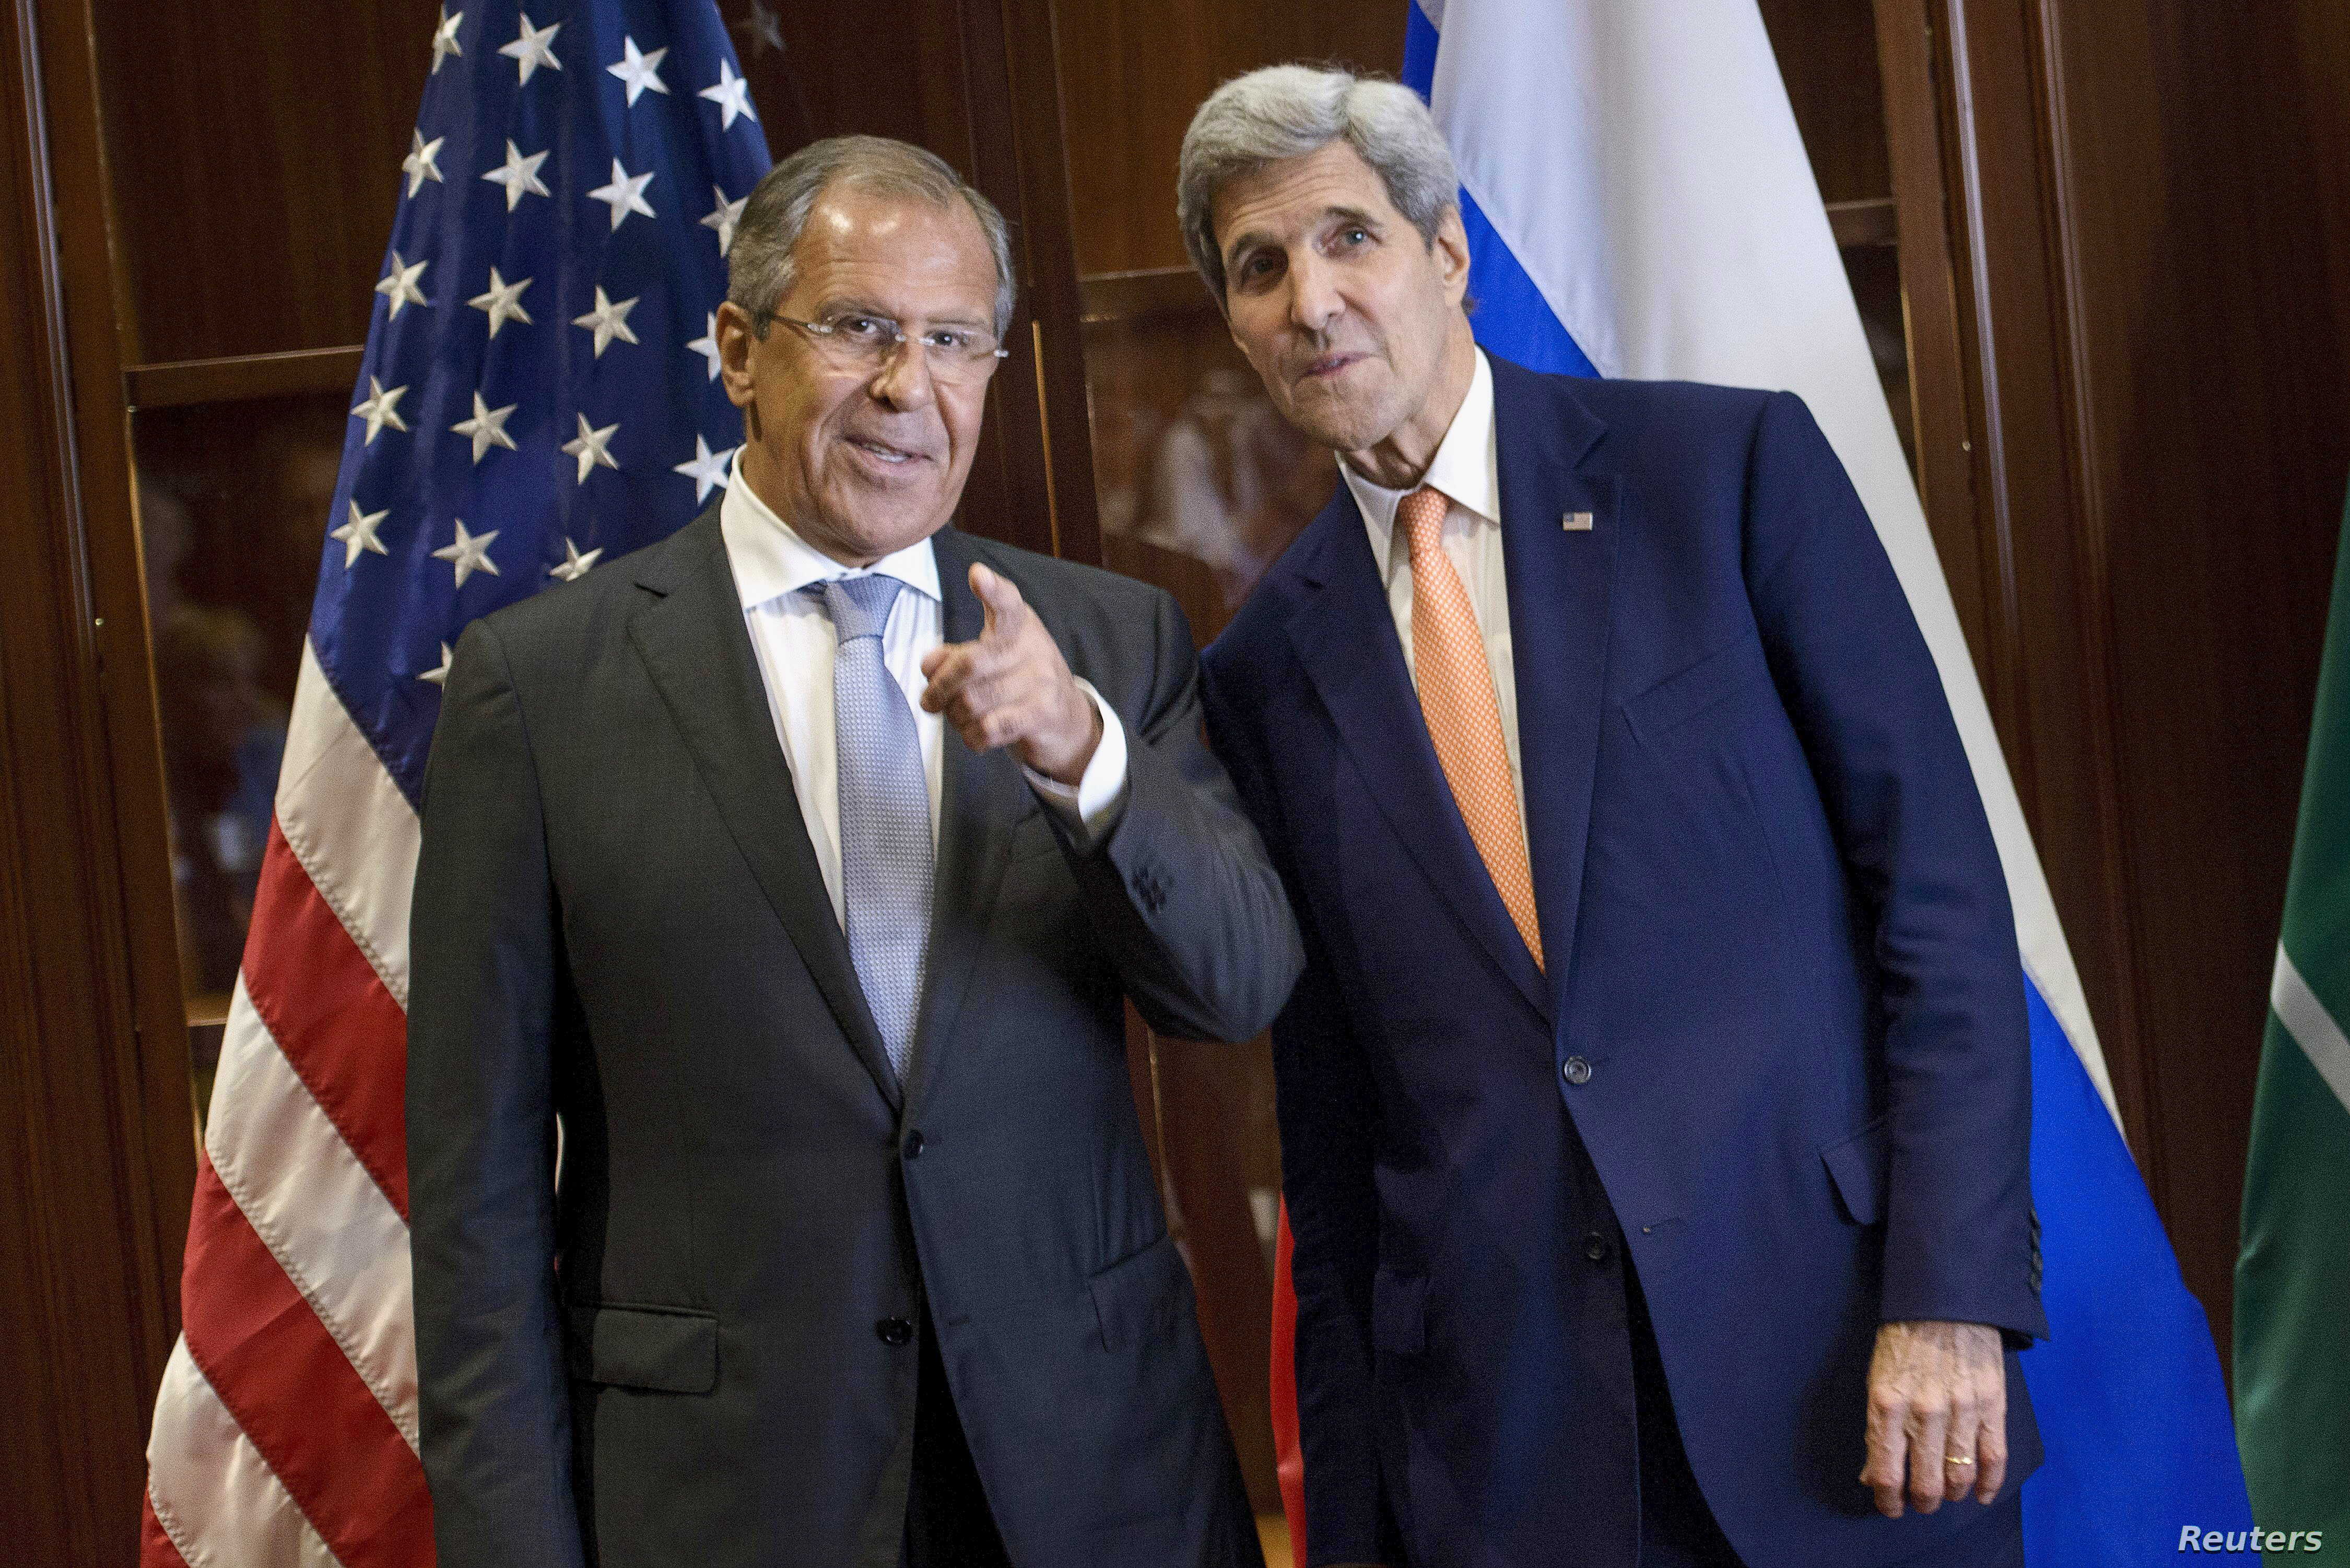 Russia's Foreign Minister Sergey Lavrov (L) and U.S. Secretary of State John Kerry talk before a trilateral meeting in Doha, Qatar Aug. 3, 2015.